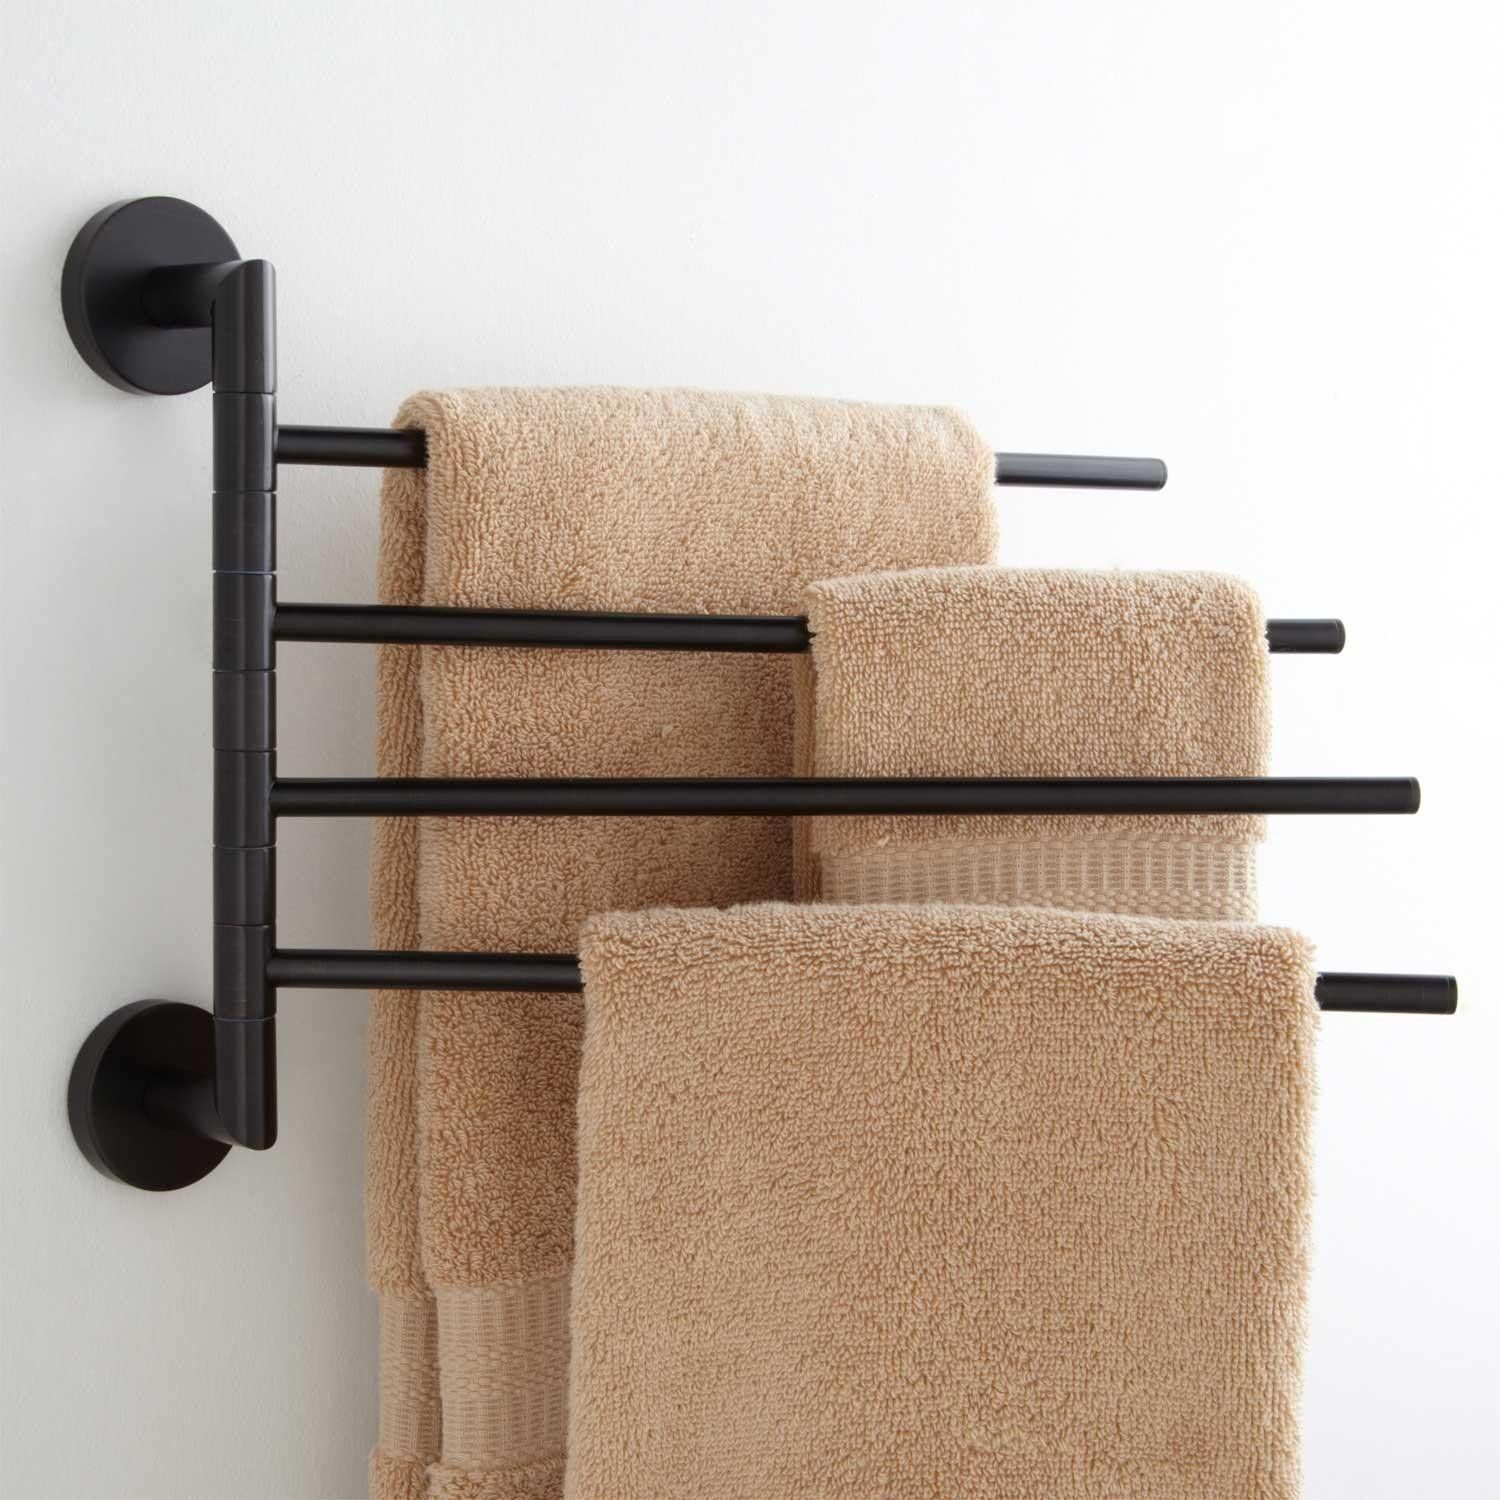 Swinging towel bar — 14